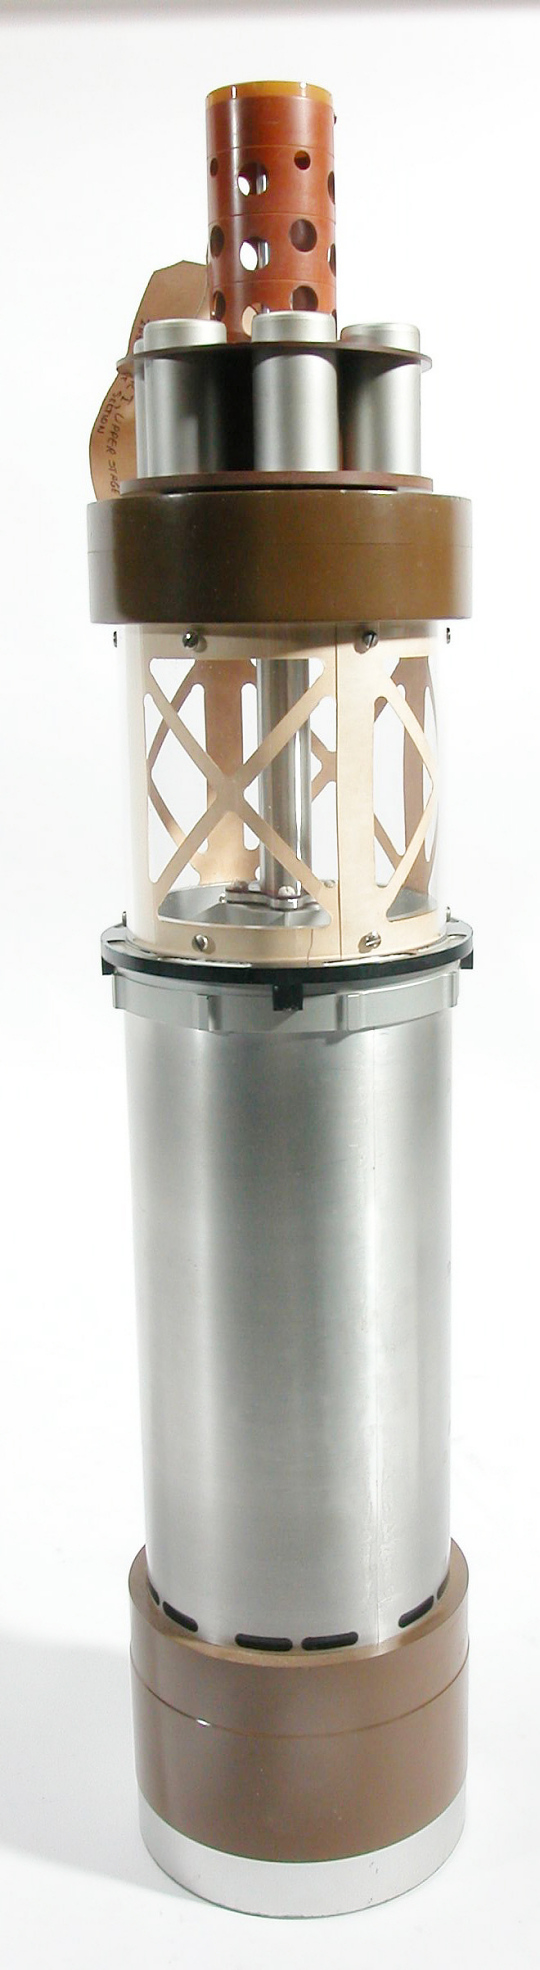 Satellite, Explorer 3, Instrument Package Mock-Up